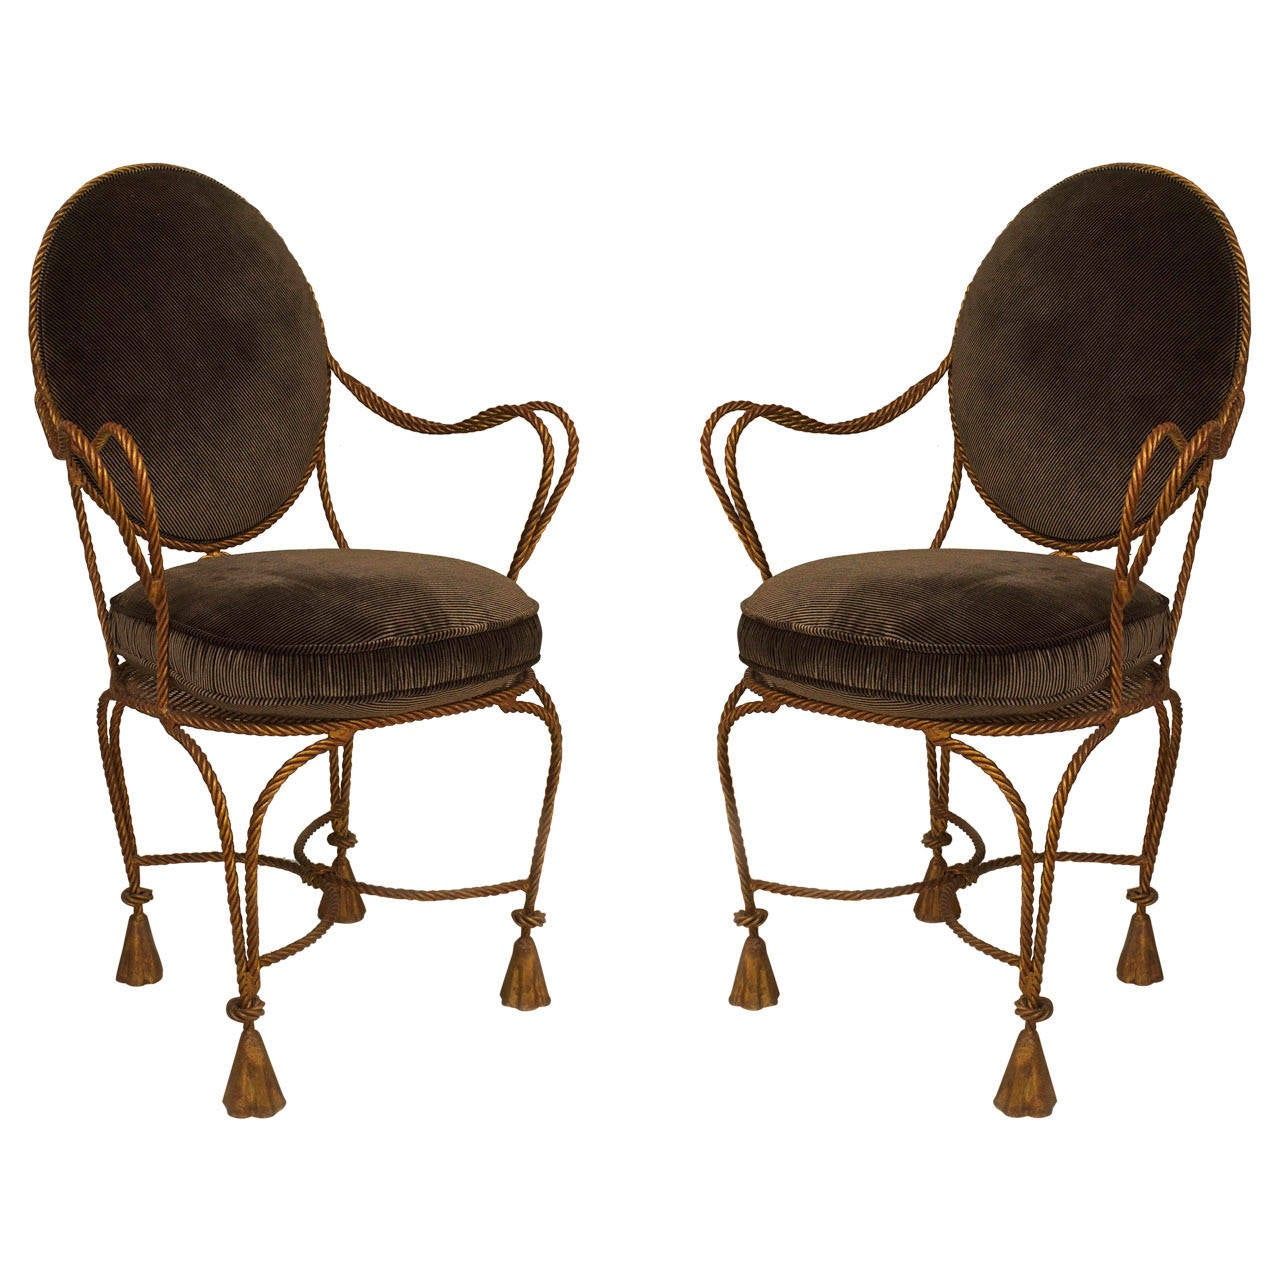 Pair of French Upholstered Rope and Tassel Armchairs